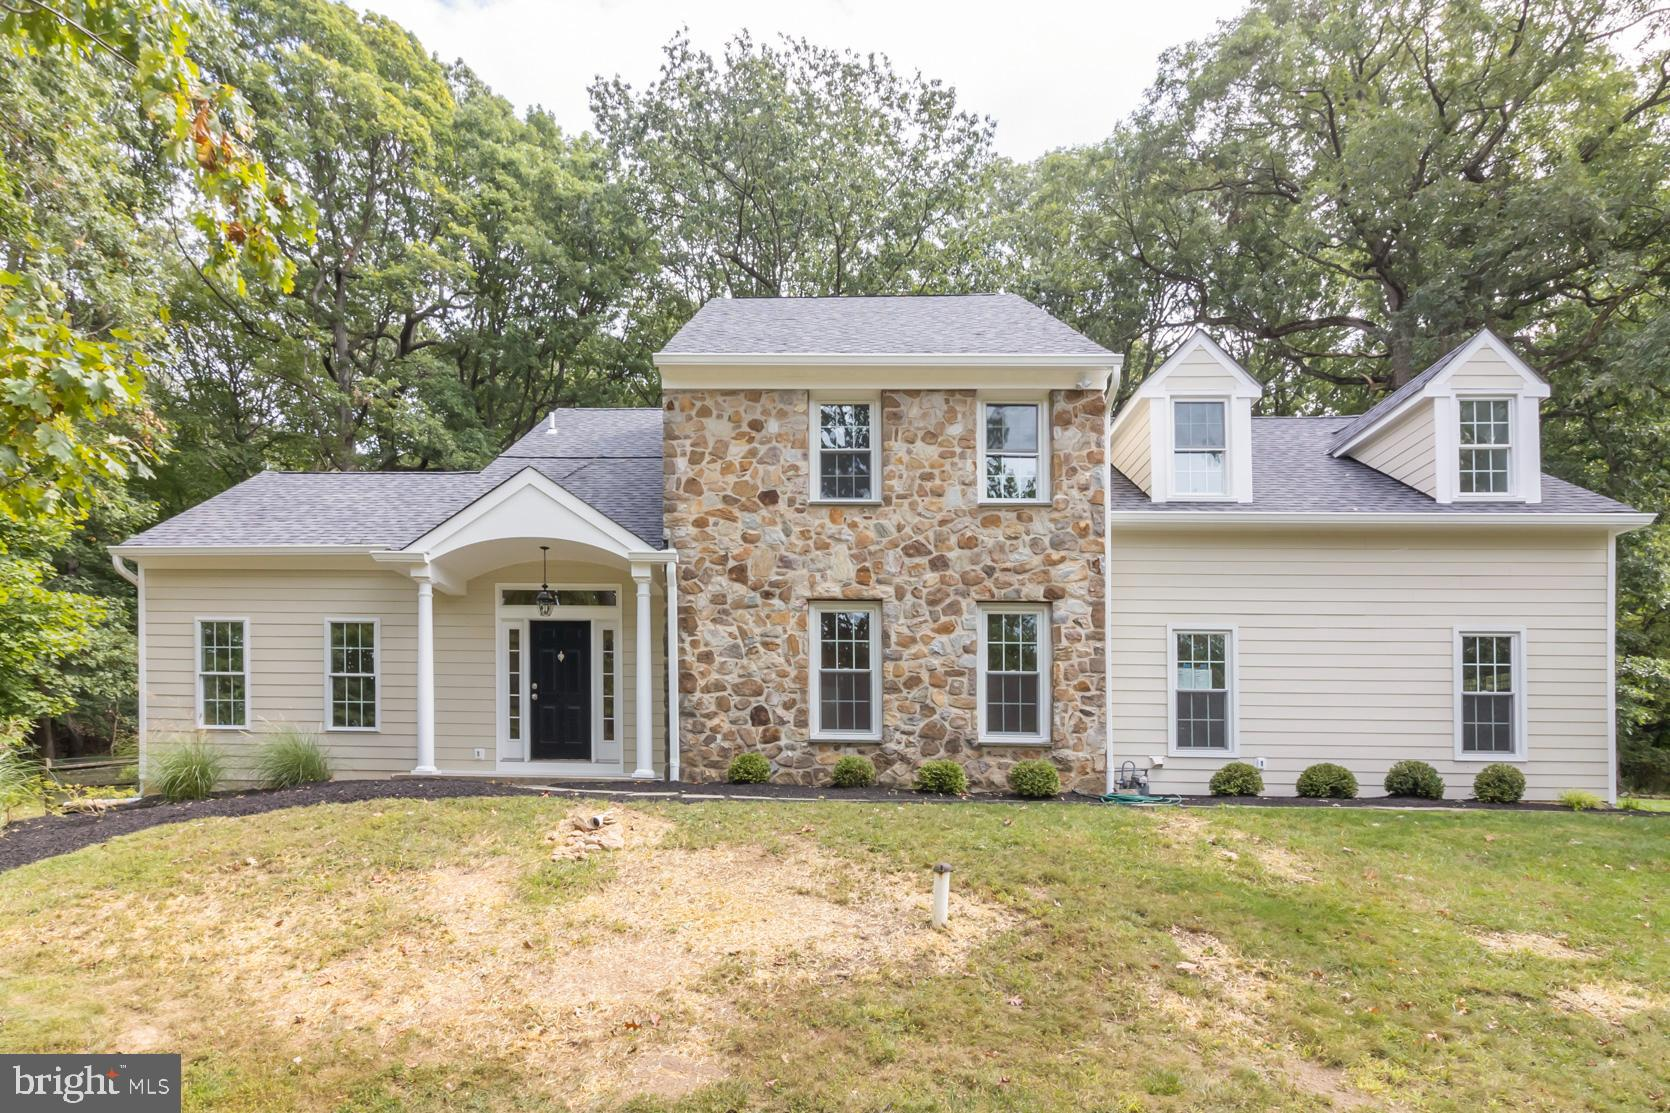 Welcome to 432 Alderbrook Drive, a completely renovated 4 bedroom 2.5 bathroom colonial home with a contemporary flair on the Main Line in highly sought-after Wayne, PA.  This home sits high at the end of a cul-de-sac street on a large lot (over an acre), including a serene wooded area with several mature oak trees, and abuts the spectacular McKaig Nature Center, an 89 acre wooded preserve with 3 miles of hiking trails.  A two-story foyer entrance and beautiful hardwood floors that span throughout the home greet you as you enter this wonderful home. The theme of this home is natural light, pouring through the home's many skylights, sliders, and windows!  To the right is the formal dining room adjacent to the kitchen, perfect for holidays and family gatherings!  To the left is the family room with impressive vaulted ceilings.  Continuing on, the living room has sliders to the fenced in yard (great for four-legged family members!) and a gorgeous field stone fireplace surround with a wood beam mantle.  The living room is open to the gourmet kitchen, where you can enjoy stainless steel appliances (including a professional-style gas range), quartz countertops, island with bar-stool seating, and an abundance of soft-close cabinetry complemented by the sleek subway tile backsplash.  Off the kitchen is another set of sliders to the stone patio, where you can dine al-fresco and overlook the flat backyard and mature oak trees.  Back inside, an updated powder room with marble tiles and a mudroom/laundry room with utility sink and W/D hookup and access to the 2-car garage complete the main level.  Upstairs, find four spacious bedrooms and two full bathrooms. The luxurious master bedroom features a spectacular sky-lit en suite bathroom with a stall shower, large quartz countertop dual vanity, porcelain tile floors, and neutral finishes. The large walk-in closet offers a blank template to design to your liking with extra storage space for your winter clothes!  The other three gen